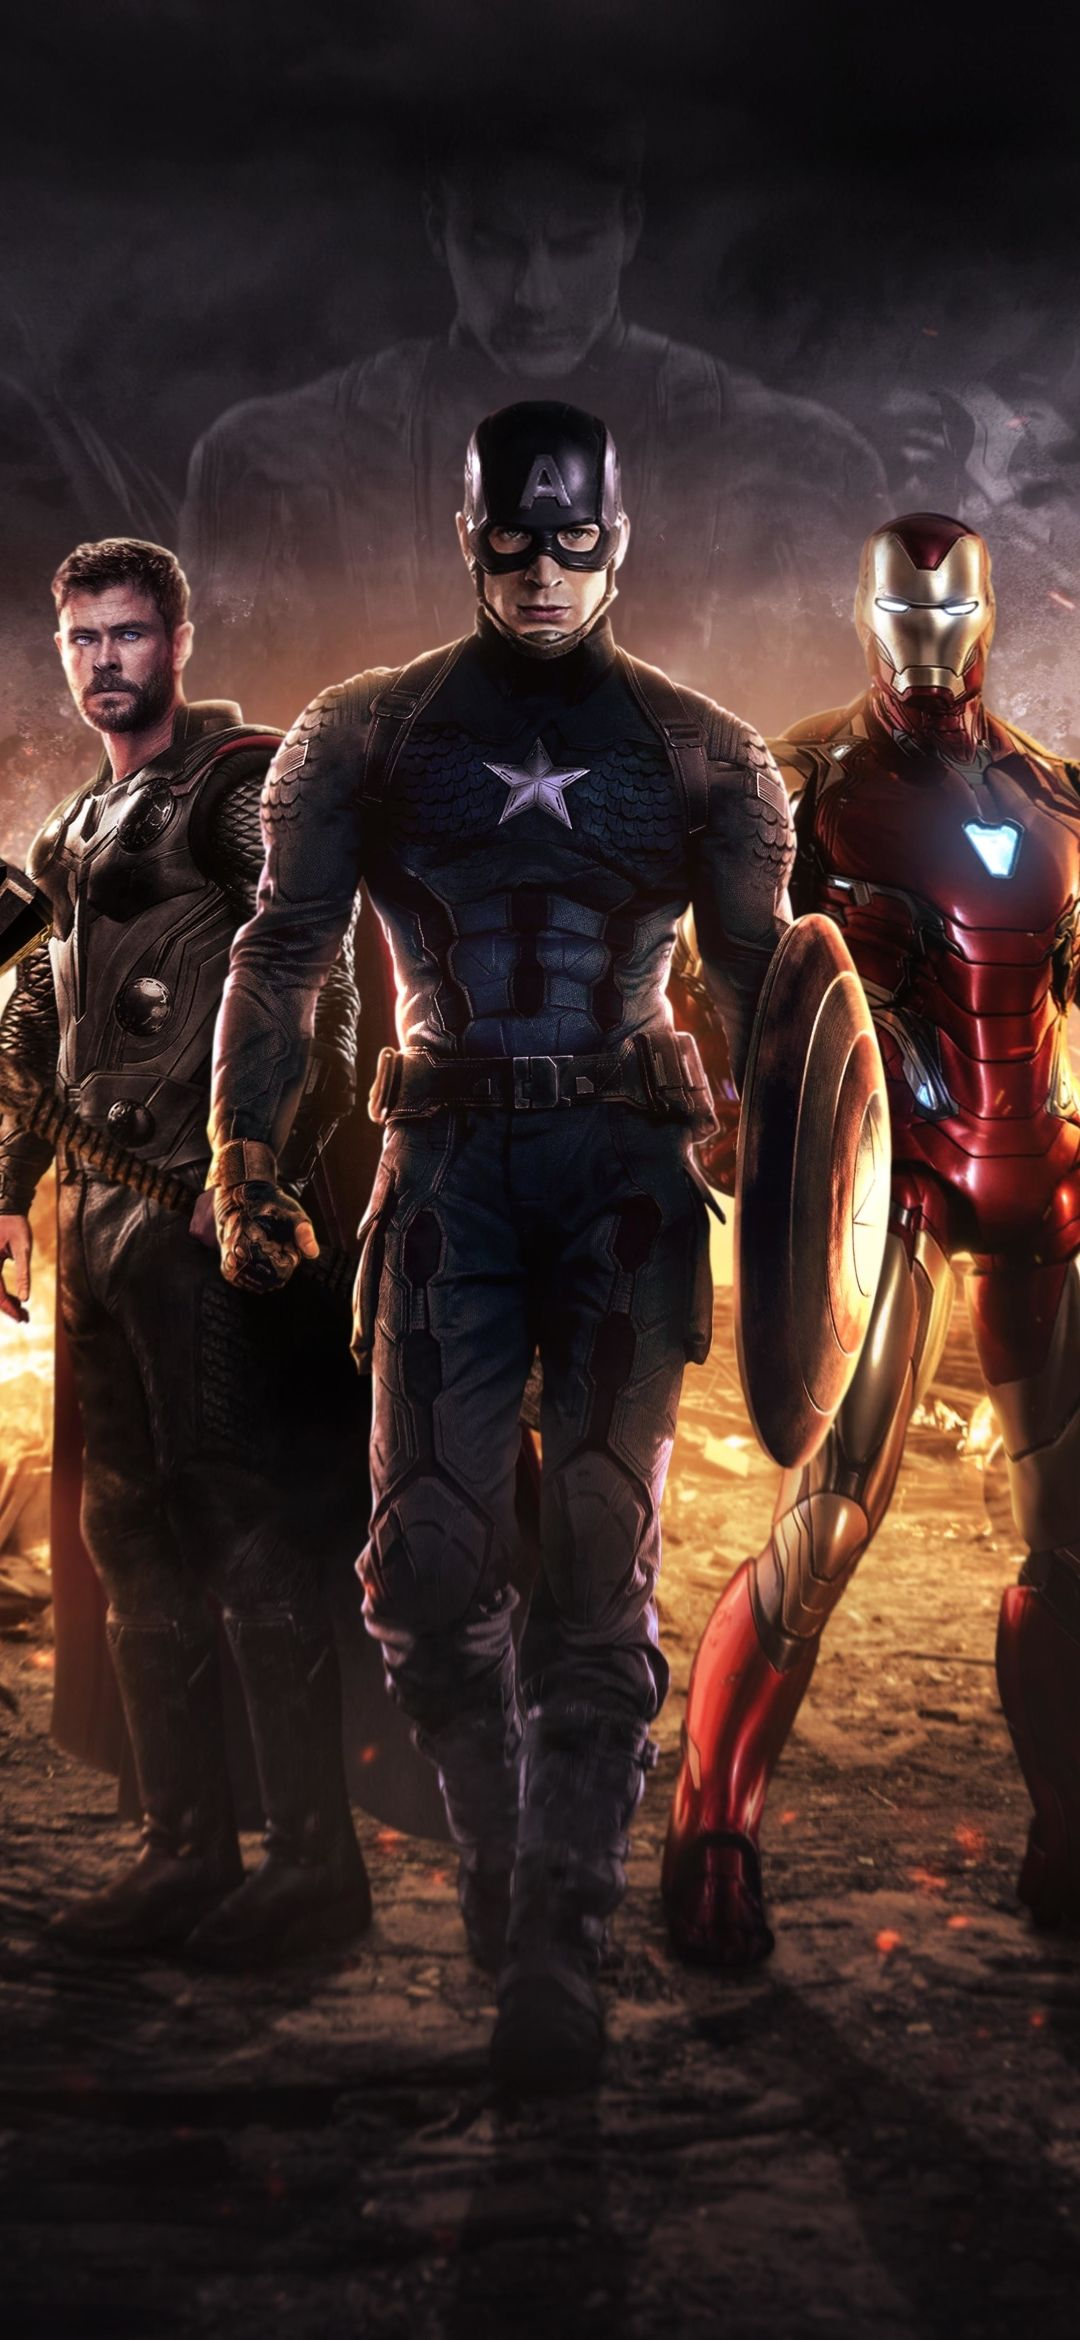 Captain America 4K Android Wallpapers - Wallpaper Cave